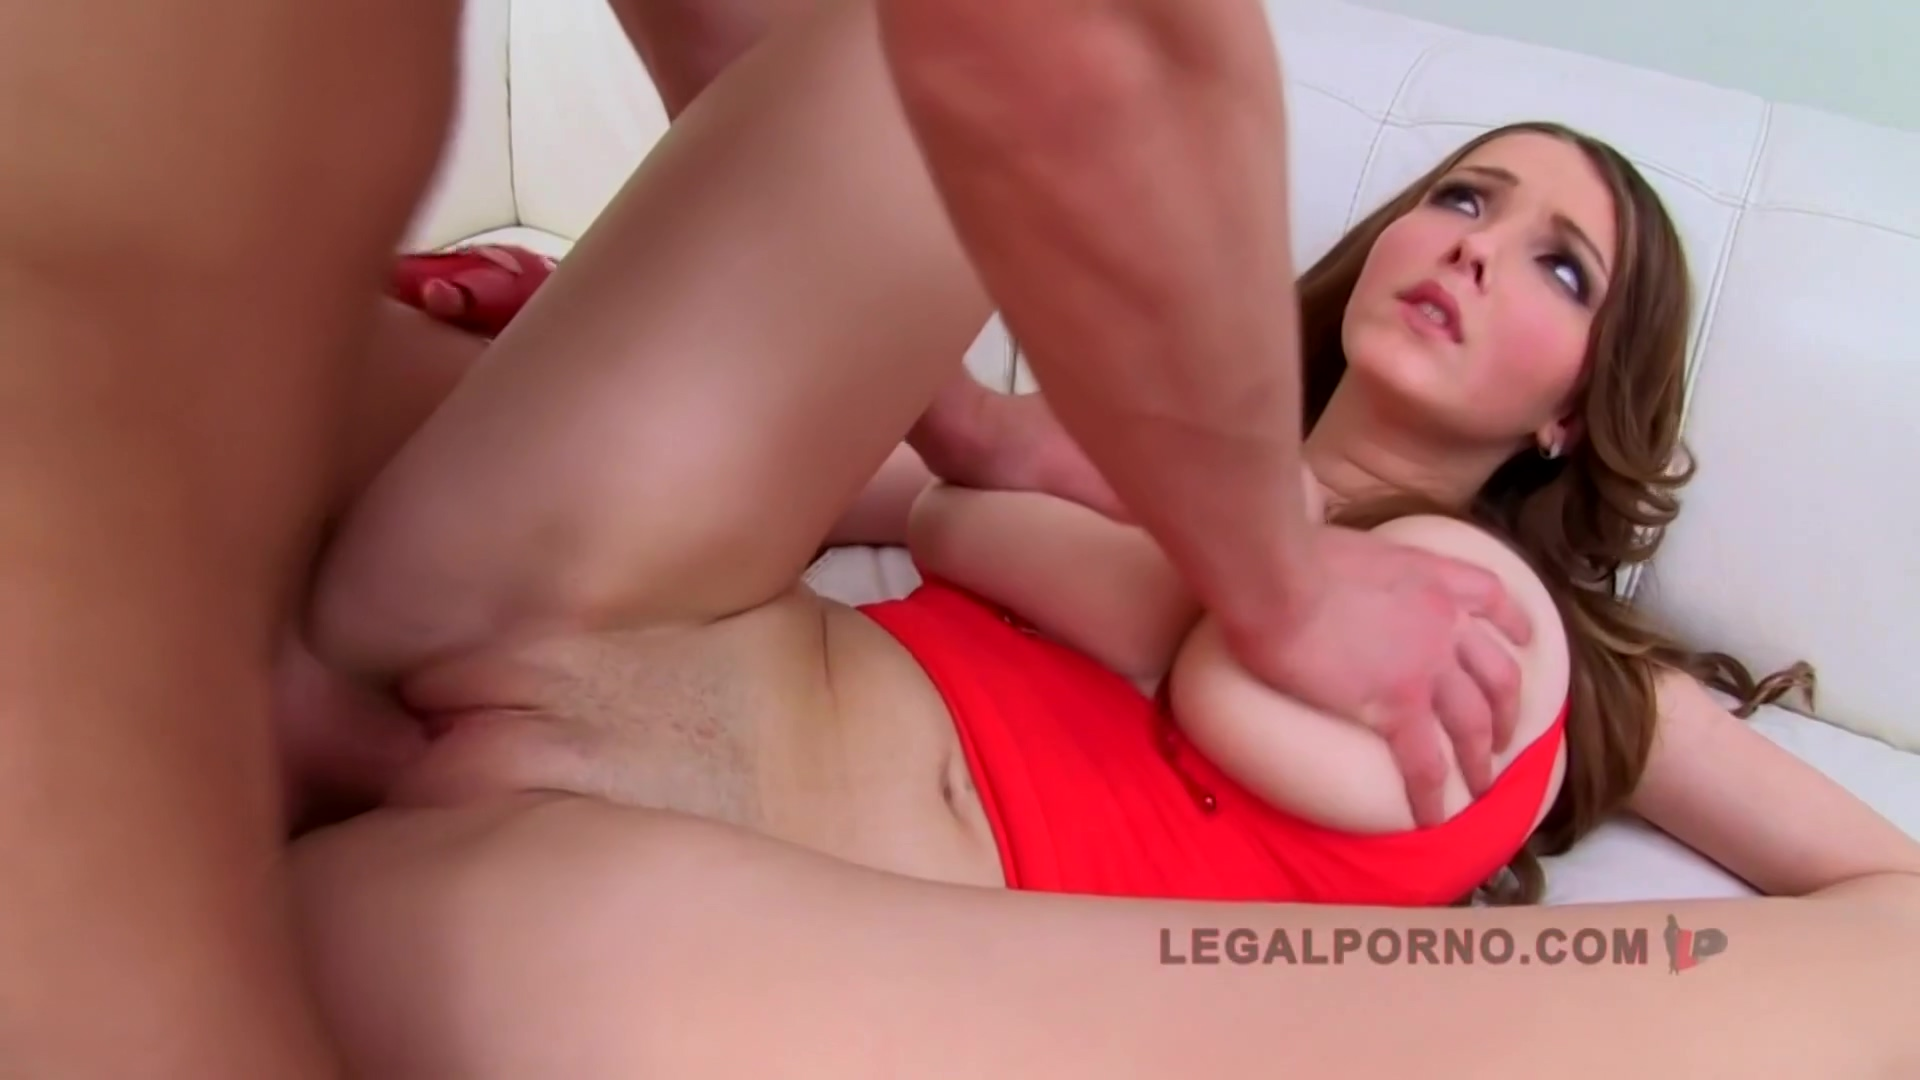 Booty Business With Lucie Wilde And Lucie